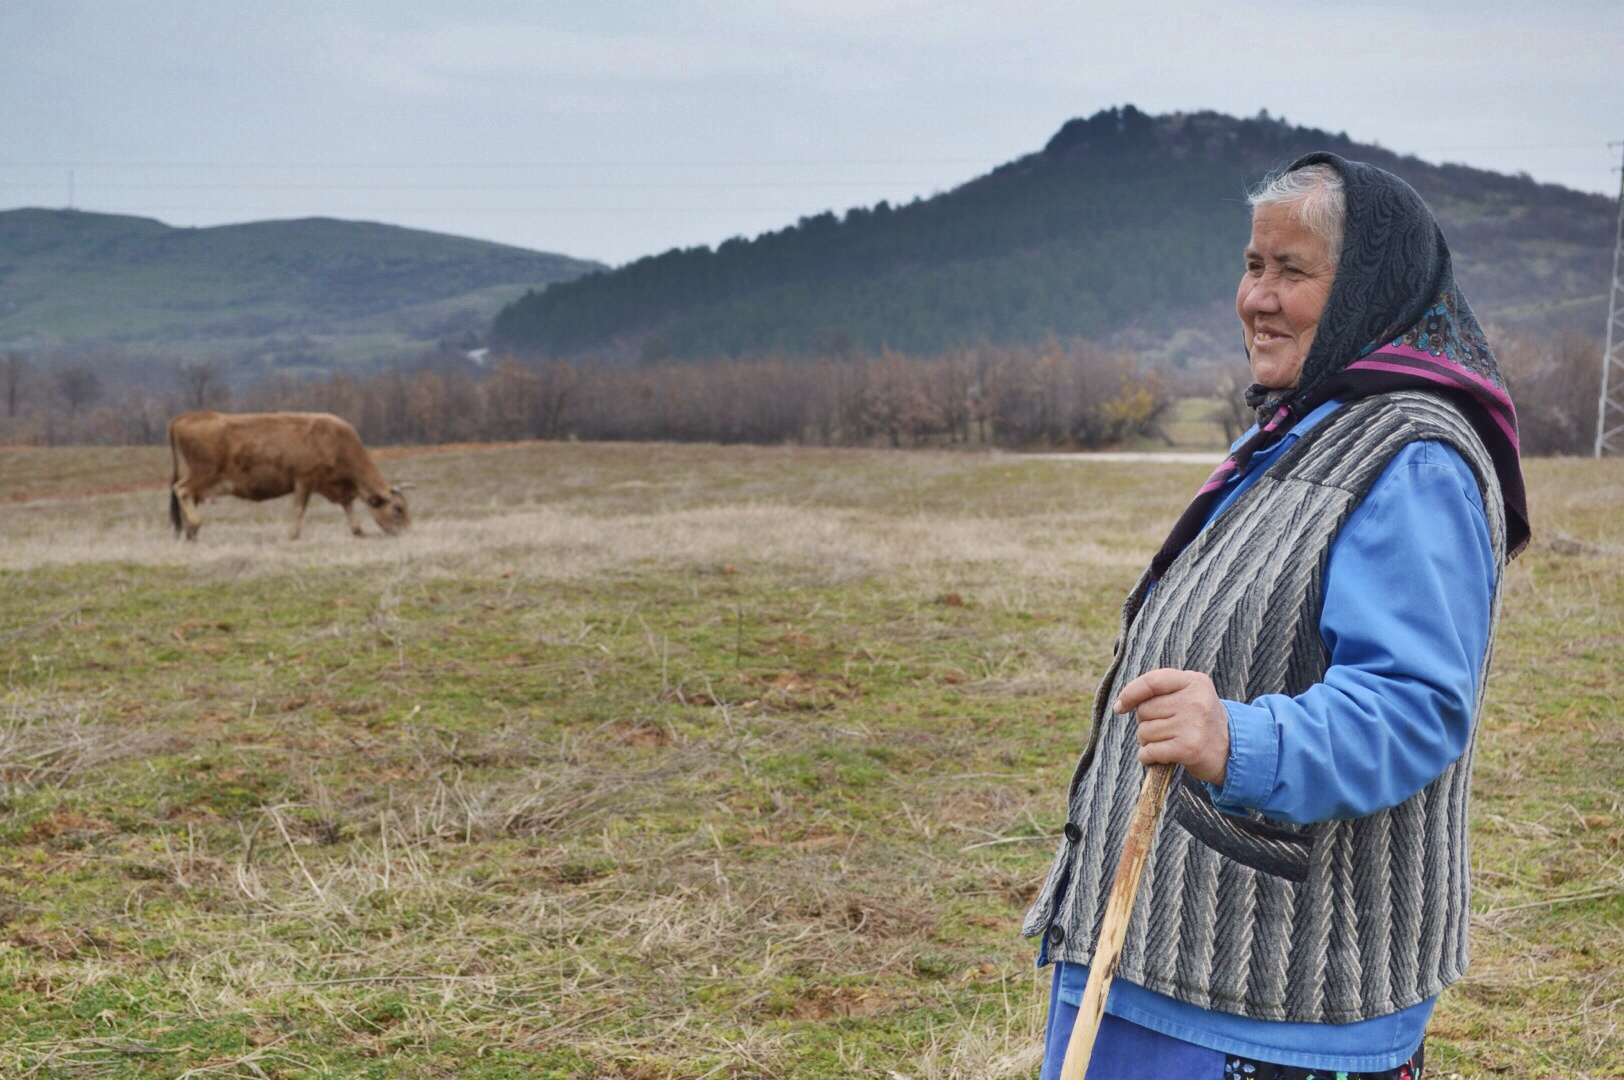 Local farmer in eastern Bulgaria mountains